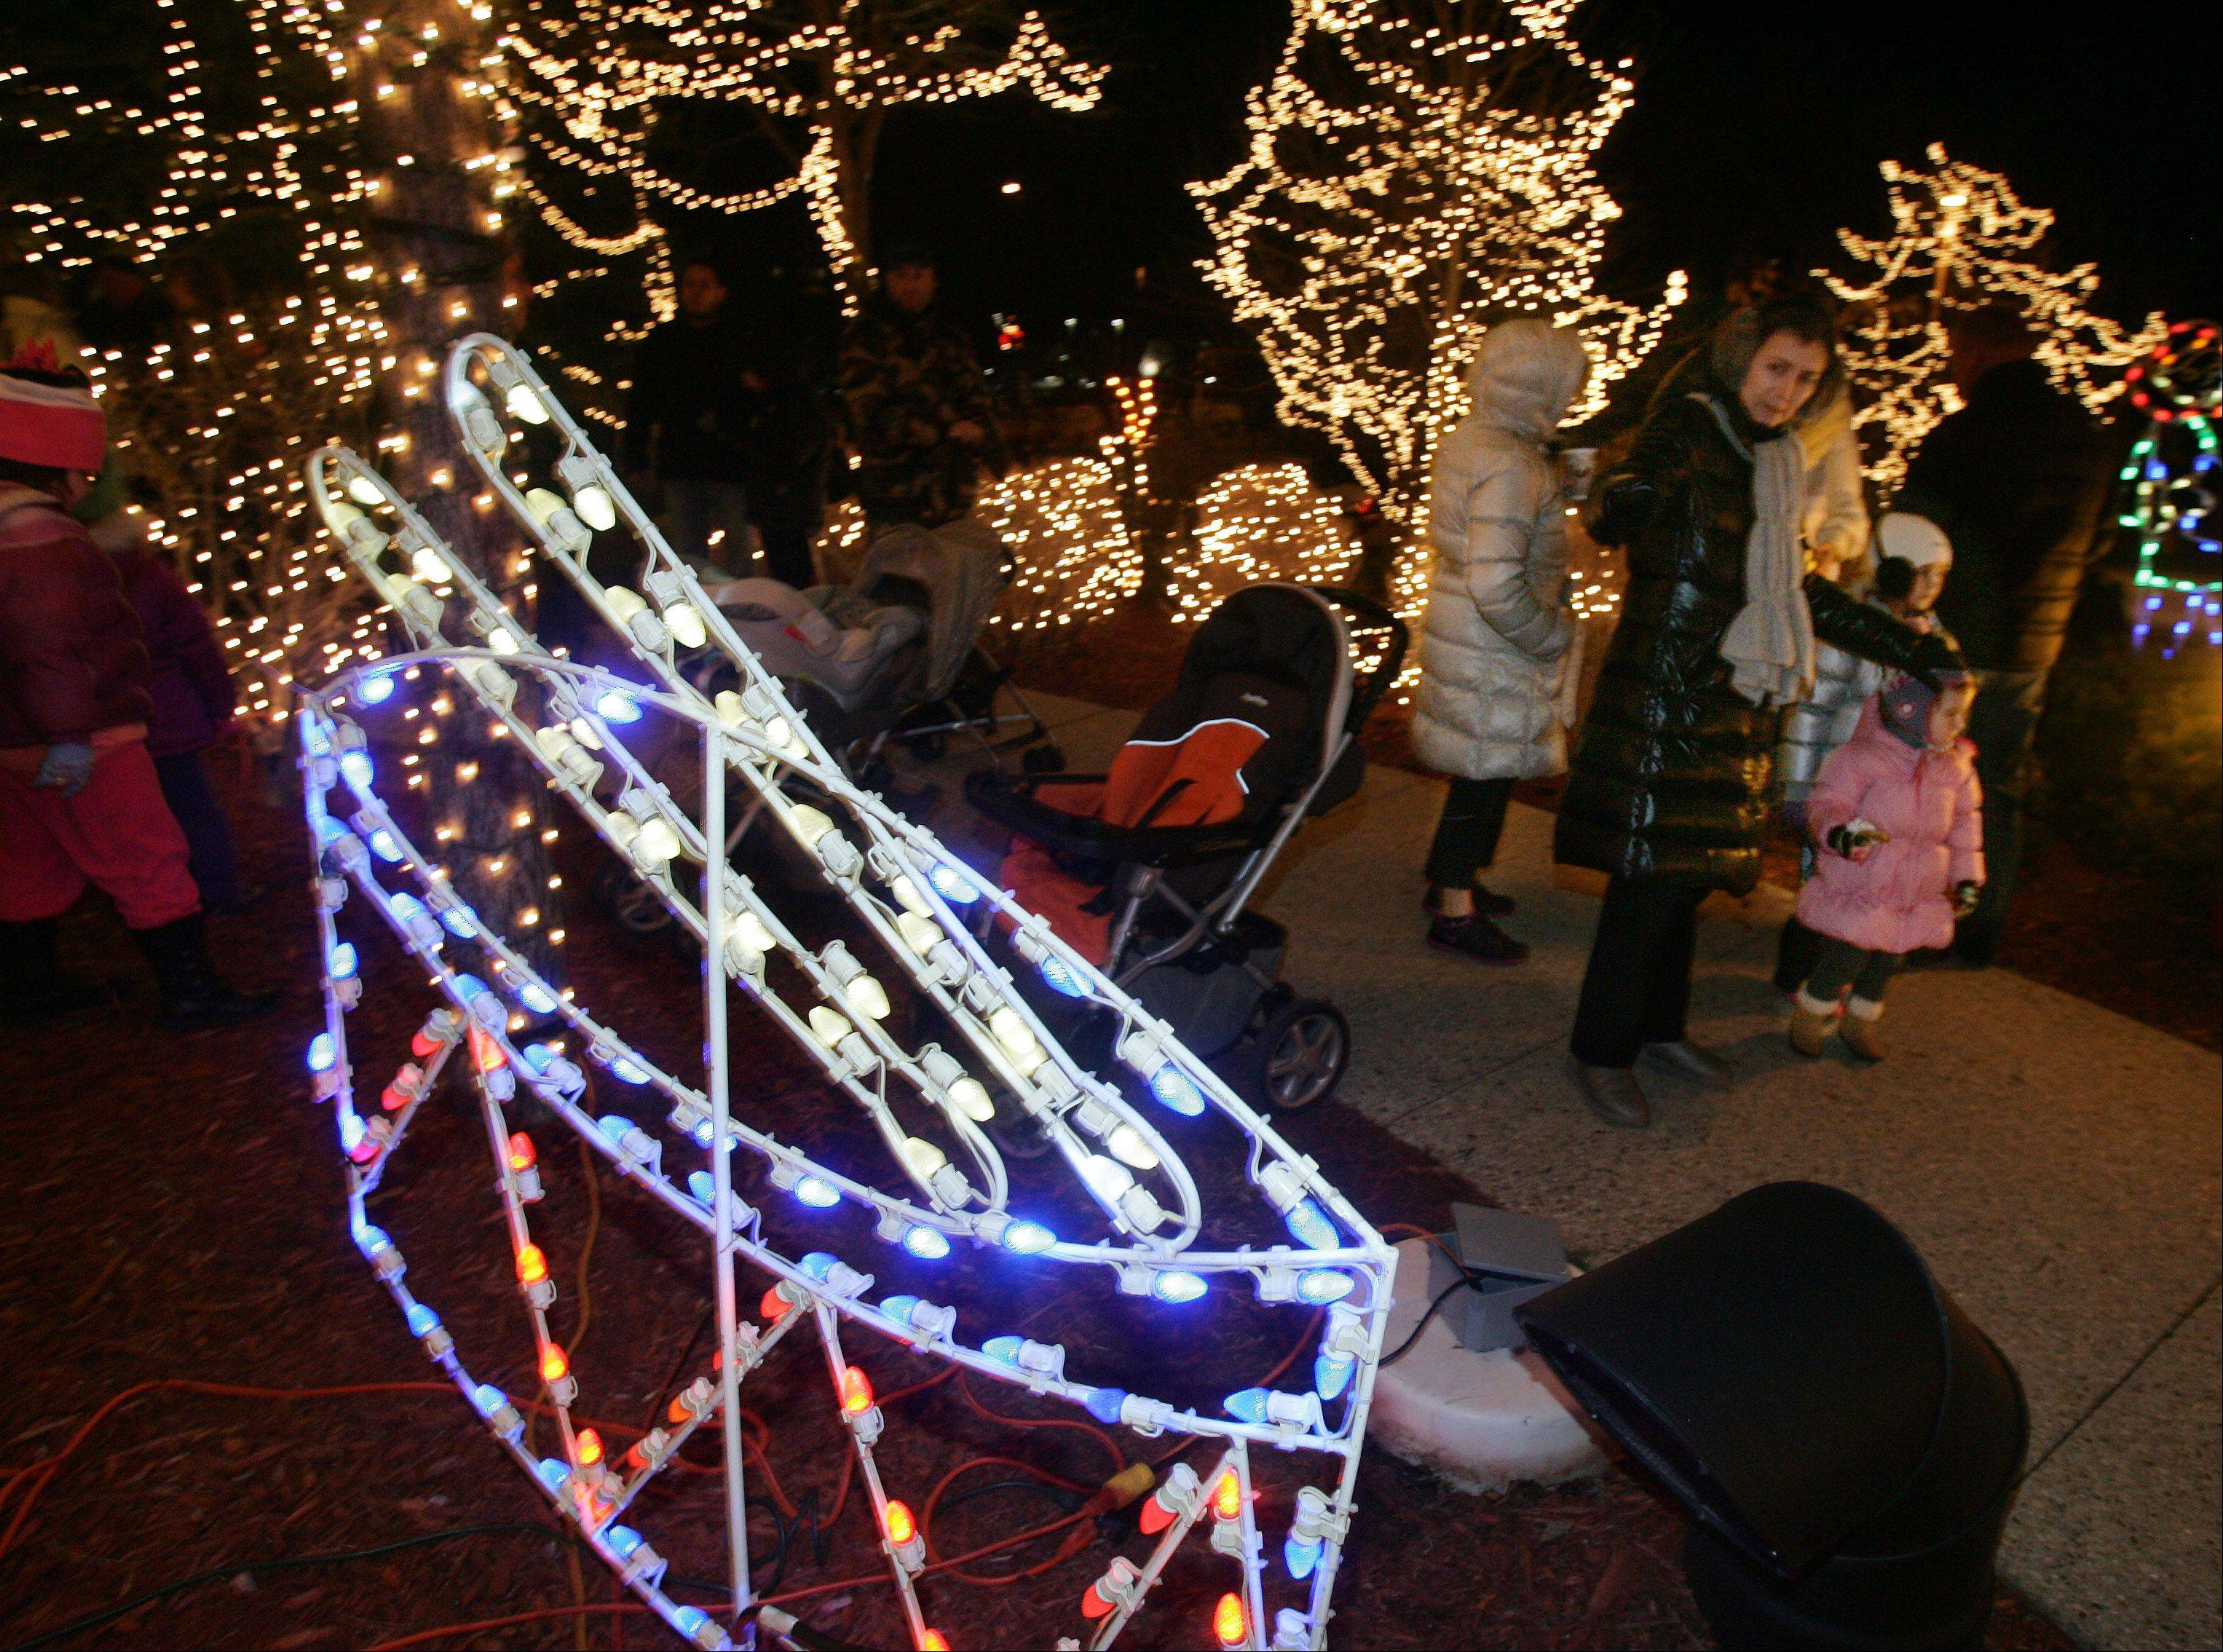 Families view the light decorations during Wheeling's Lighting of the Lights Sunday at Friendship Park.